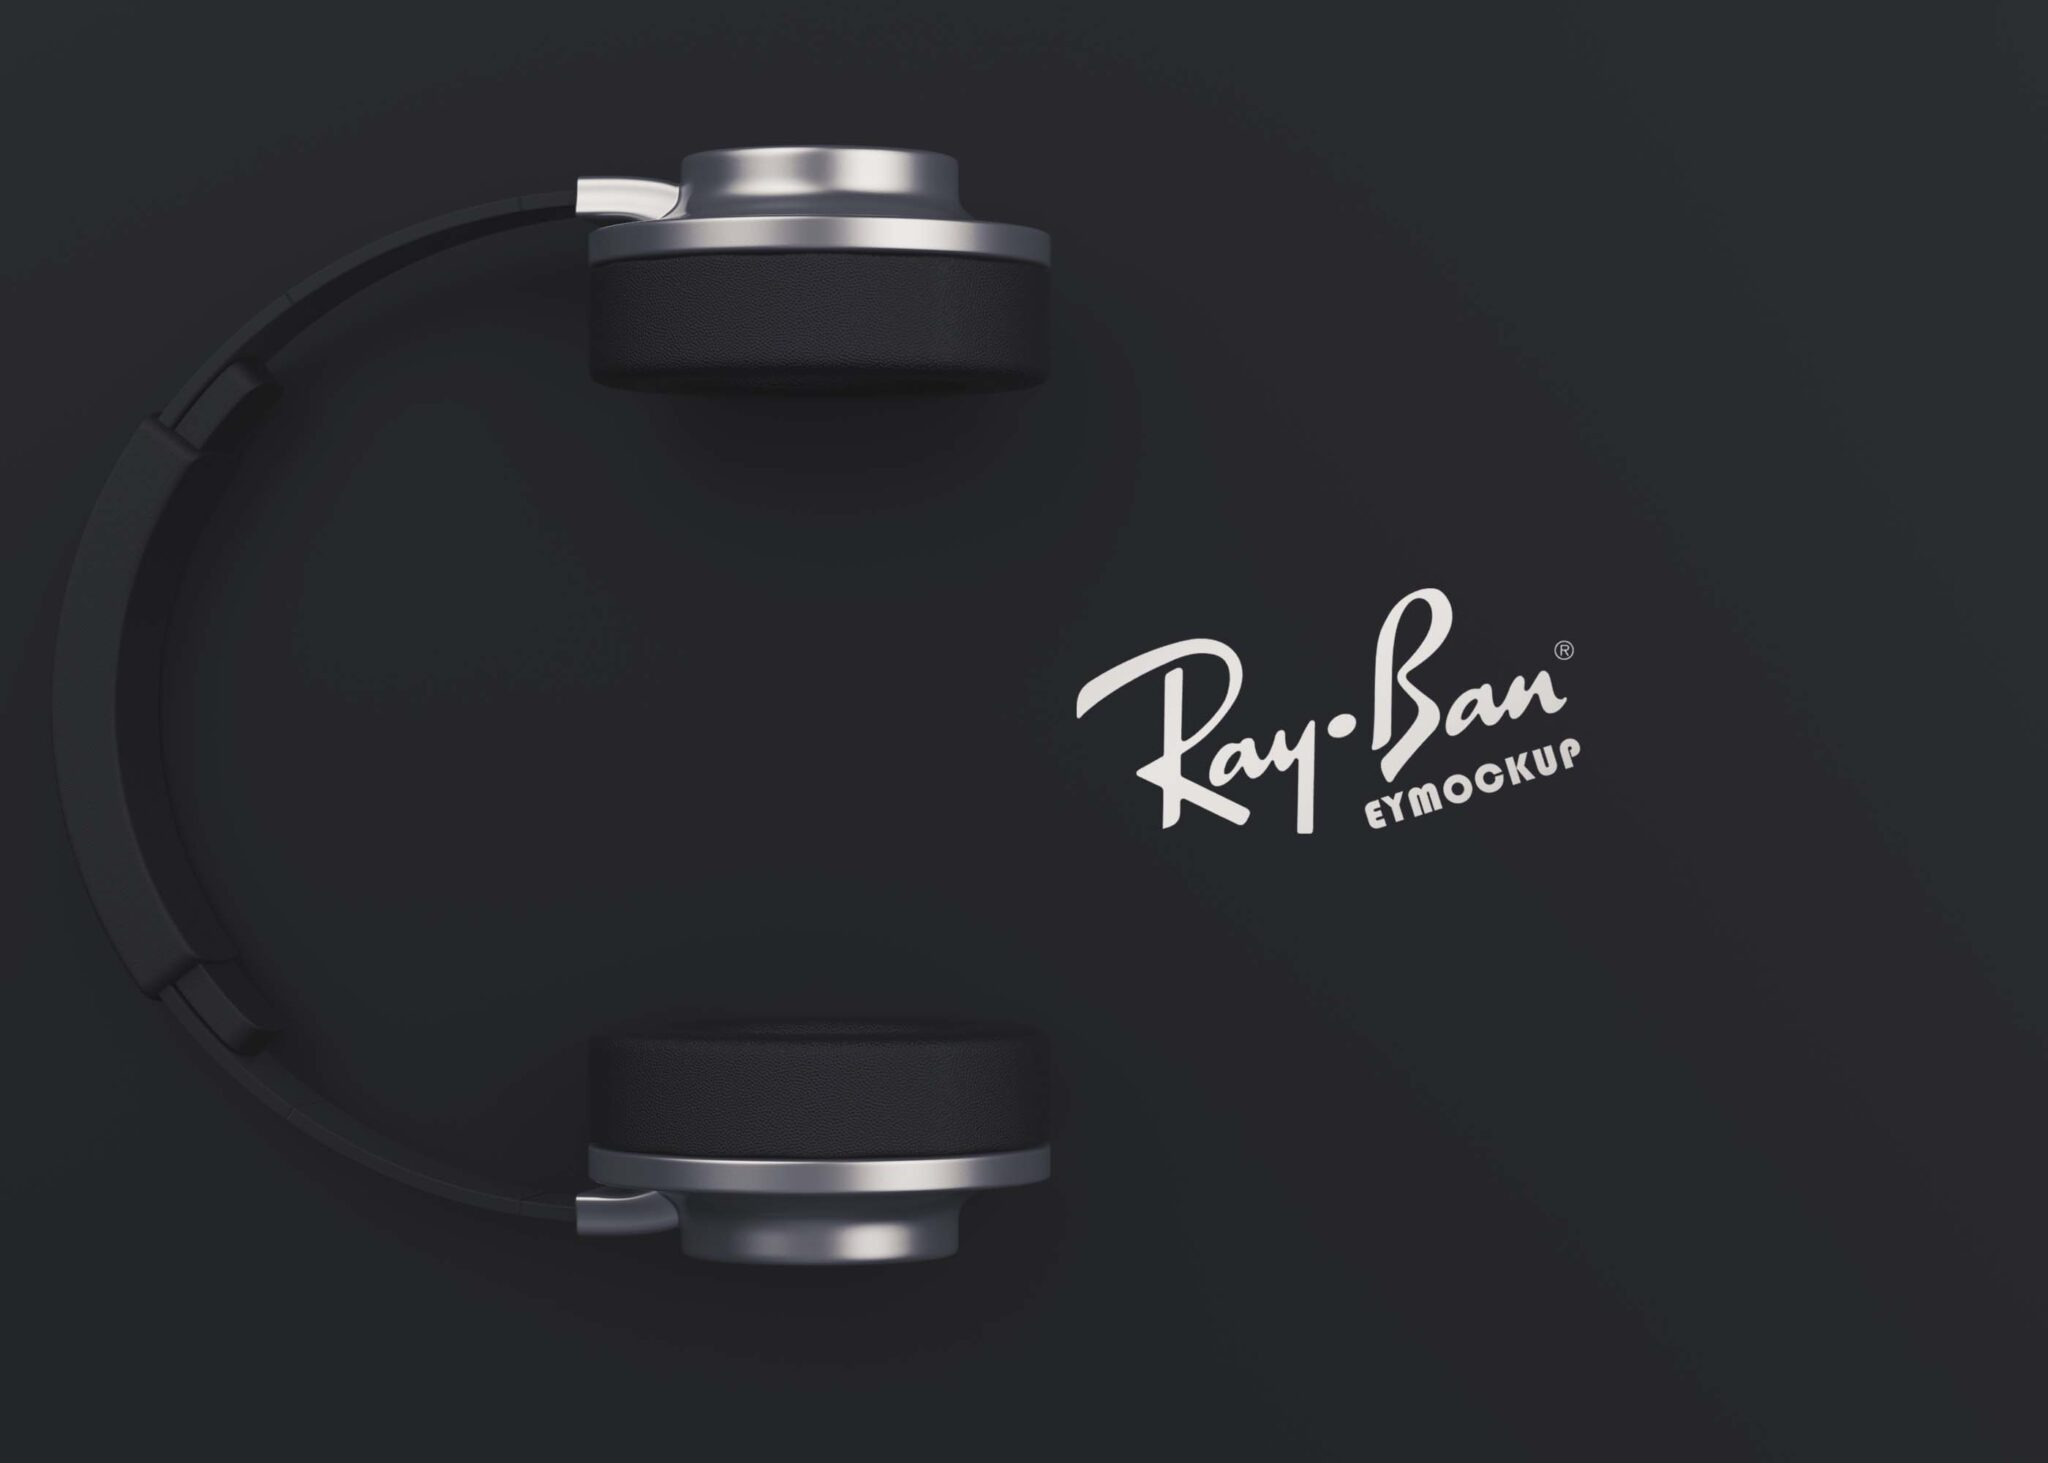 Black Headphone Branding Mockup